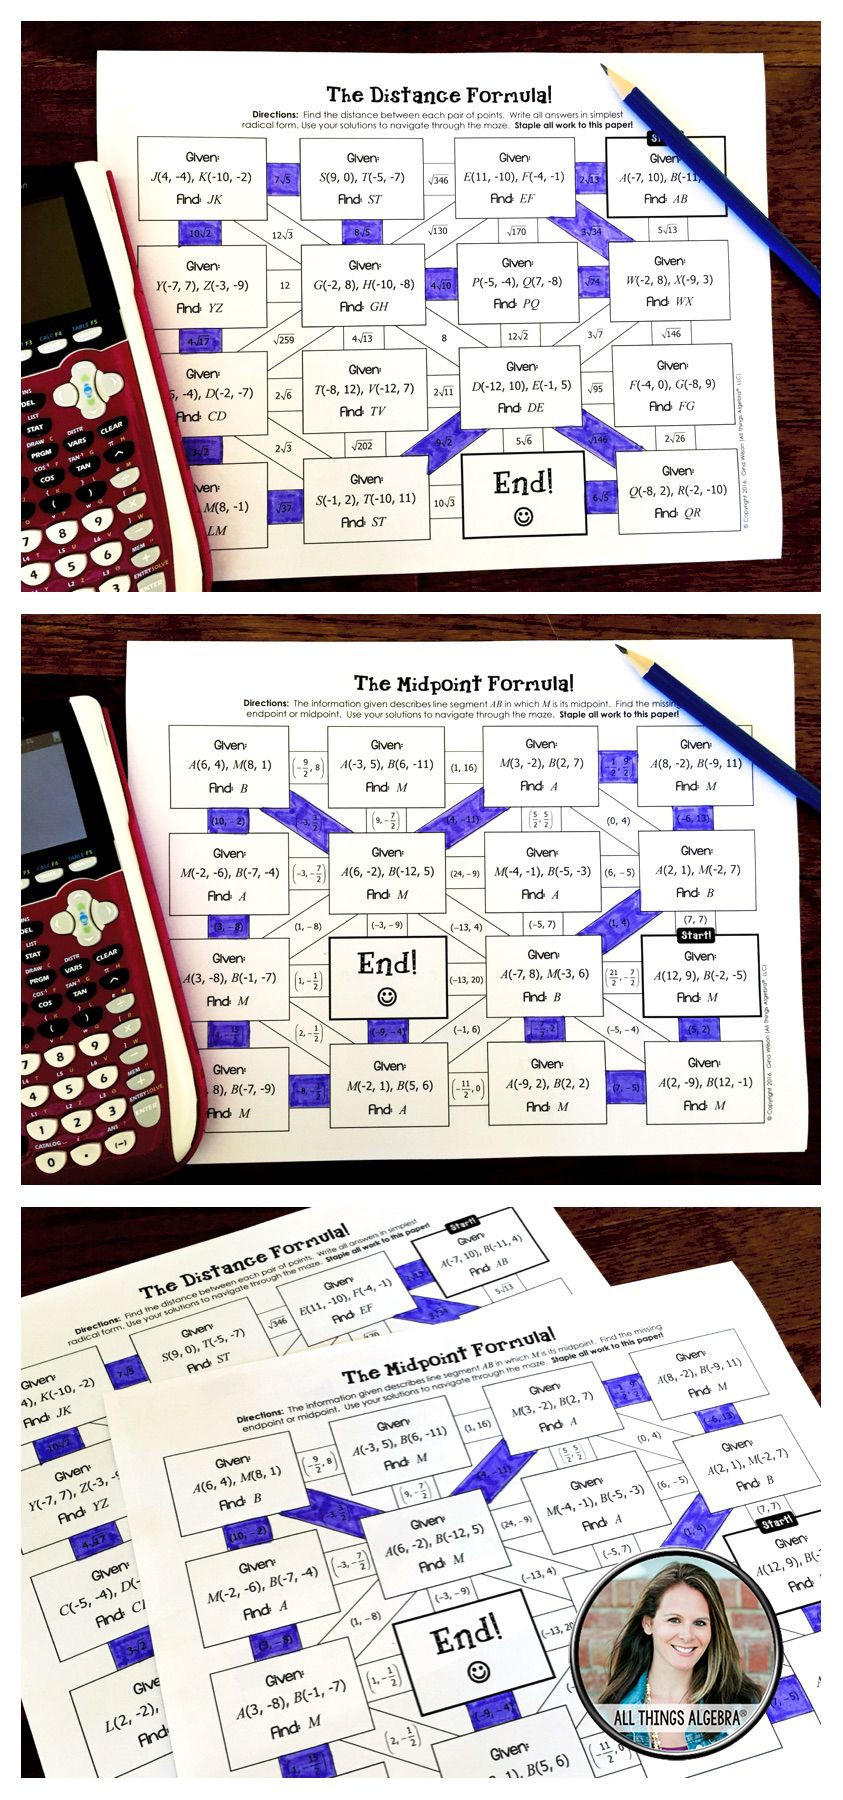 The Distance formula Worksheet Answers Distance formula and Midpoint formula Mazes